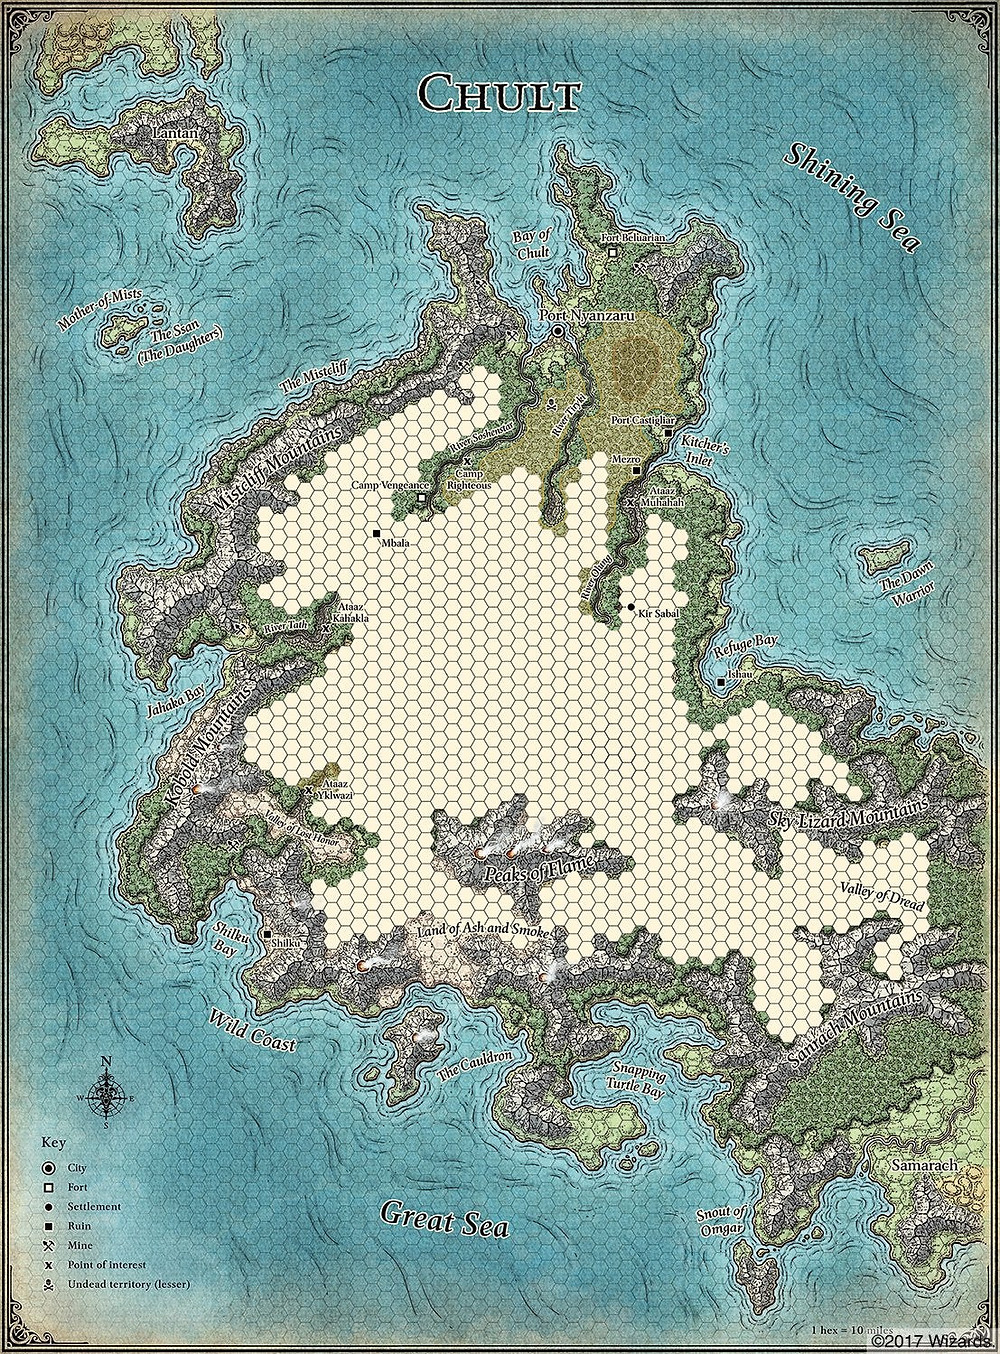 Hexmap Dungeons & Dragons rpg world map Tomb of Annihilation Chult